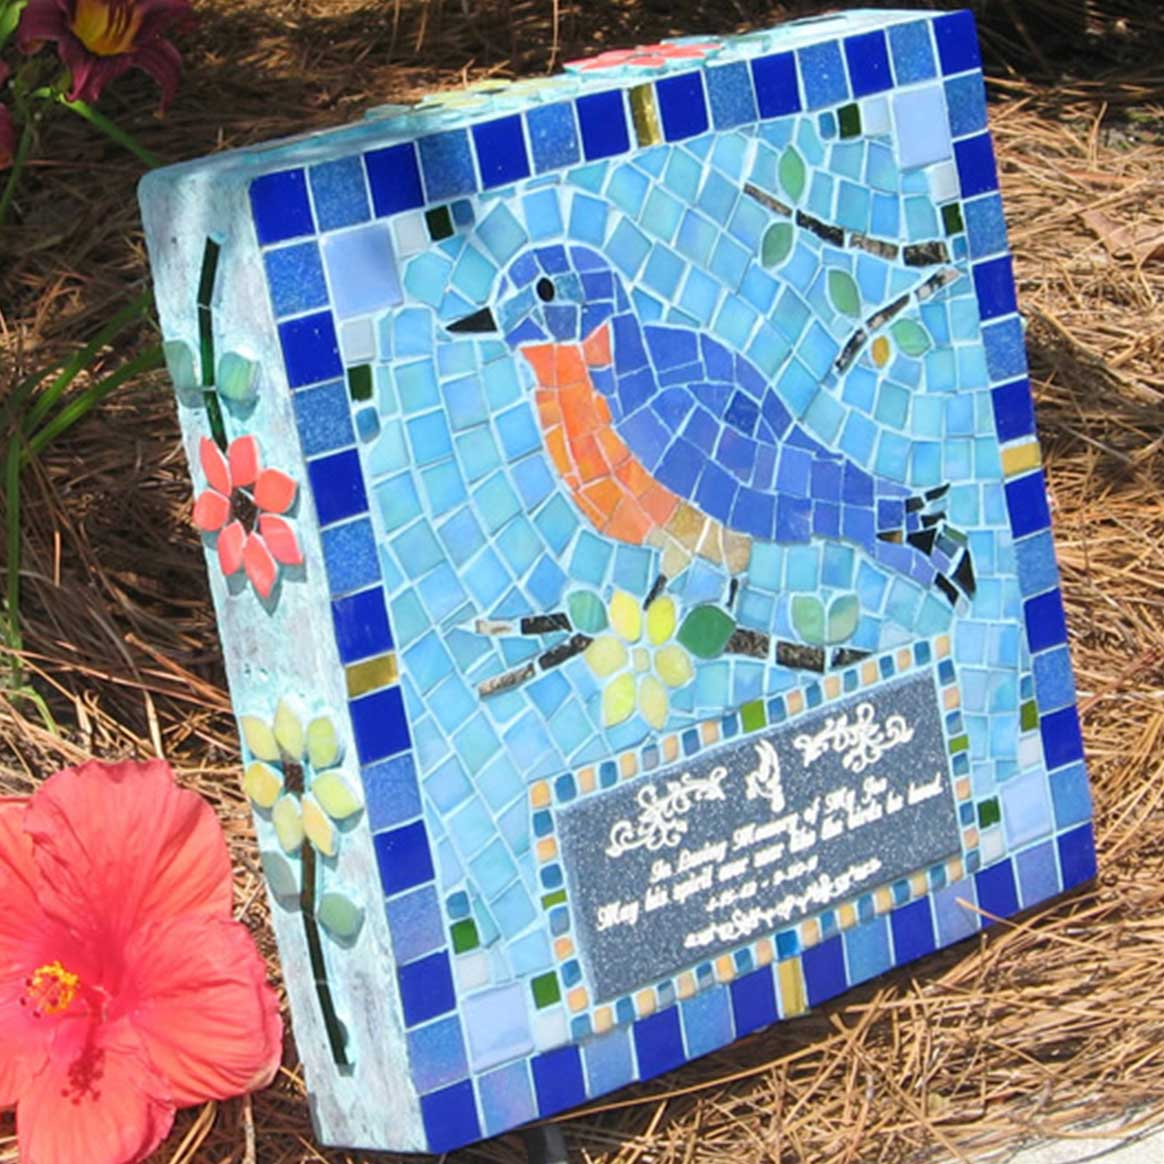 Mosaic Memorial Garden Art Stone of Dad's Bluebird by Water's End Studio Artist Linda Solby